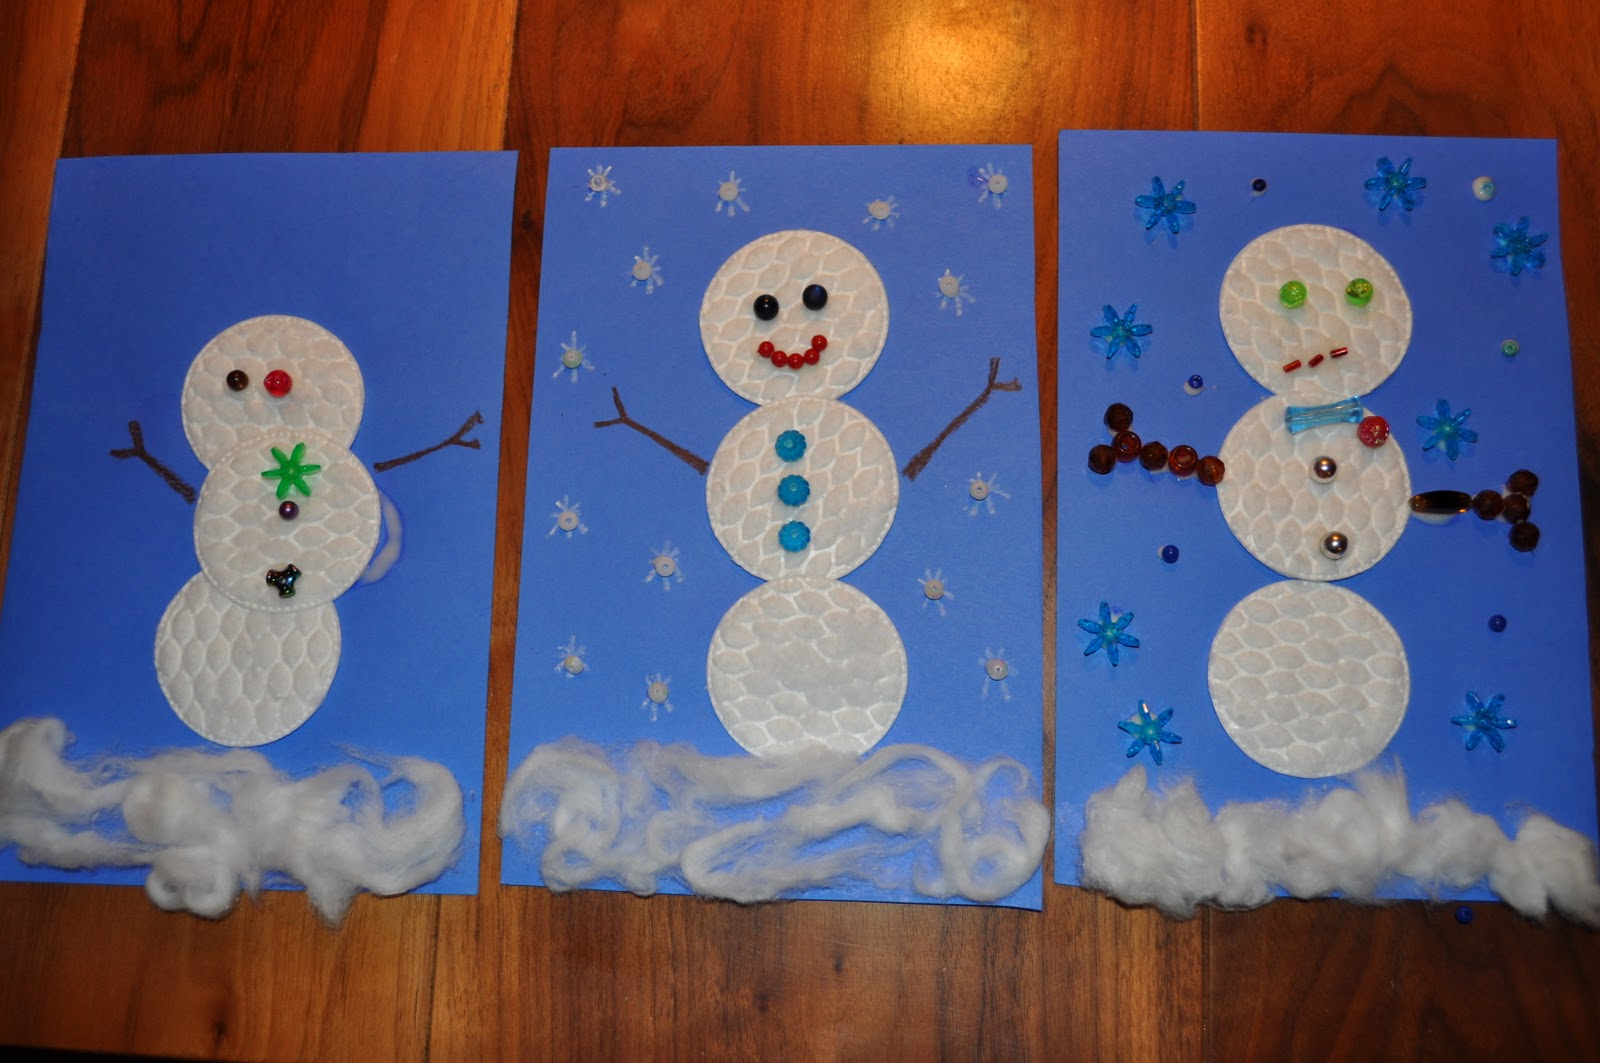 snowman activities for preschool cotton rounds snowman family crafts 242